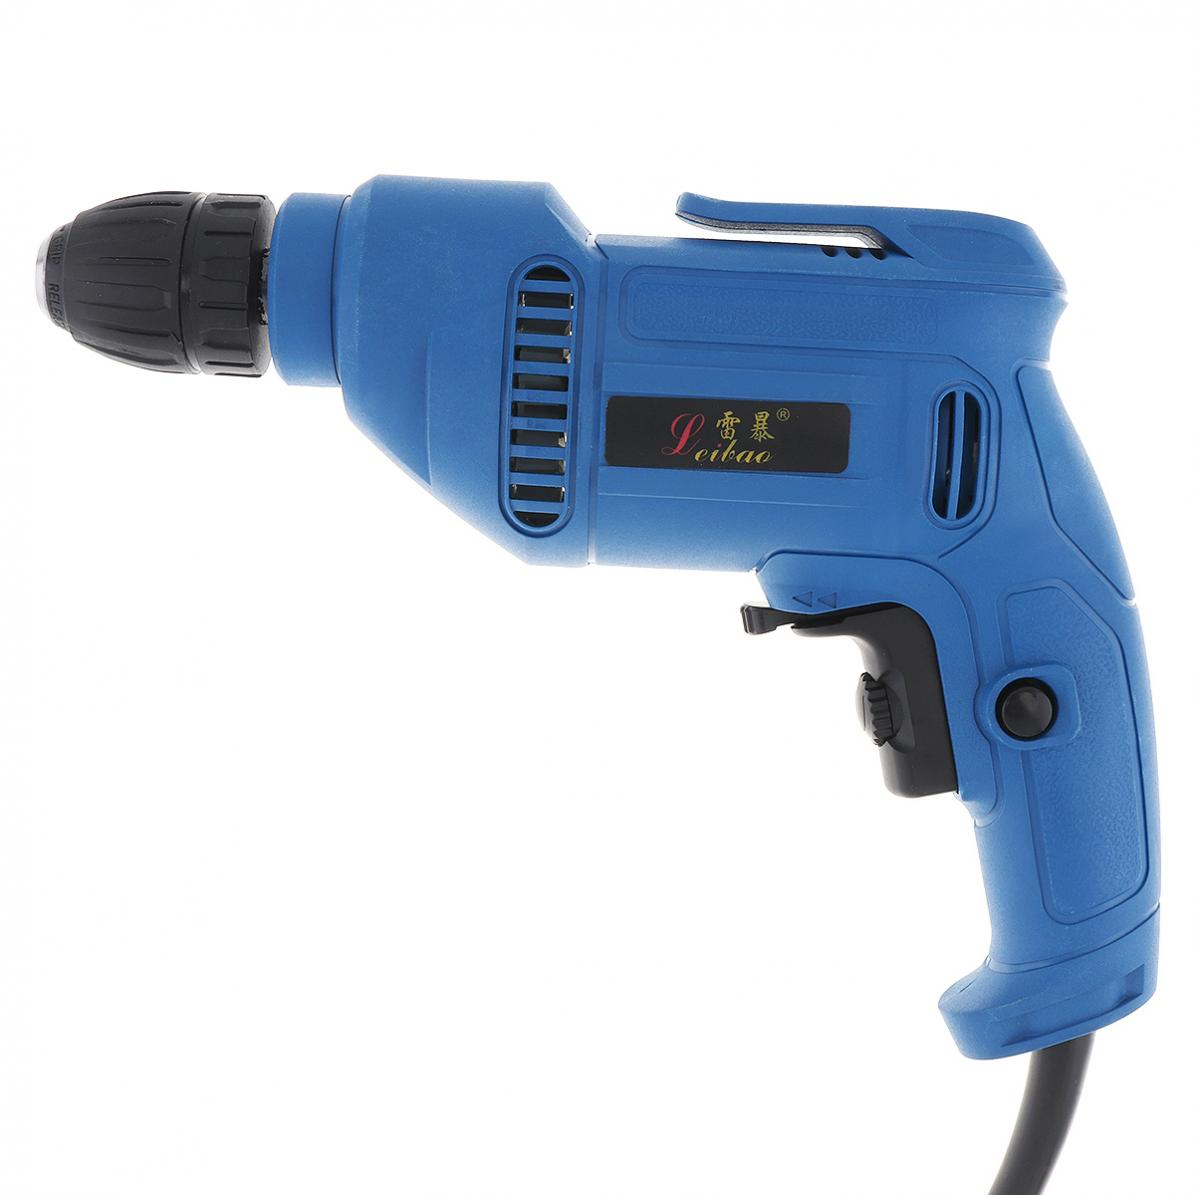 220V-600W-Handheld-Electric-Impact-Wrench-Drill-Screwdriver-w-10mm-Drill-Chuck miniature 10